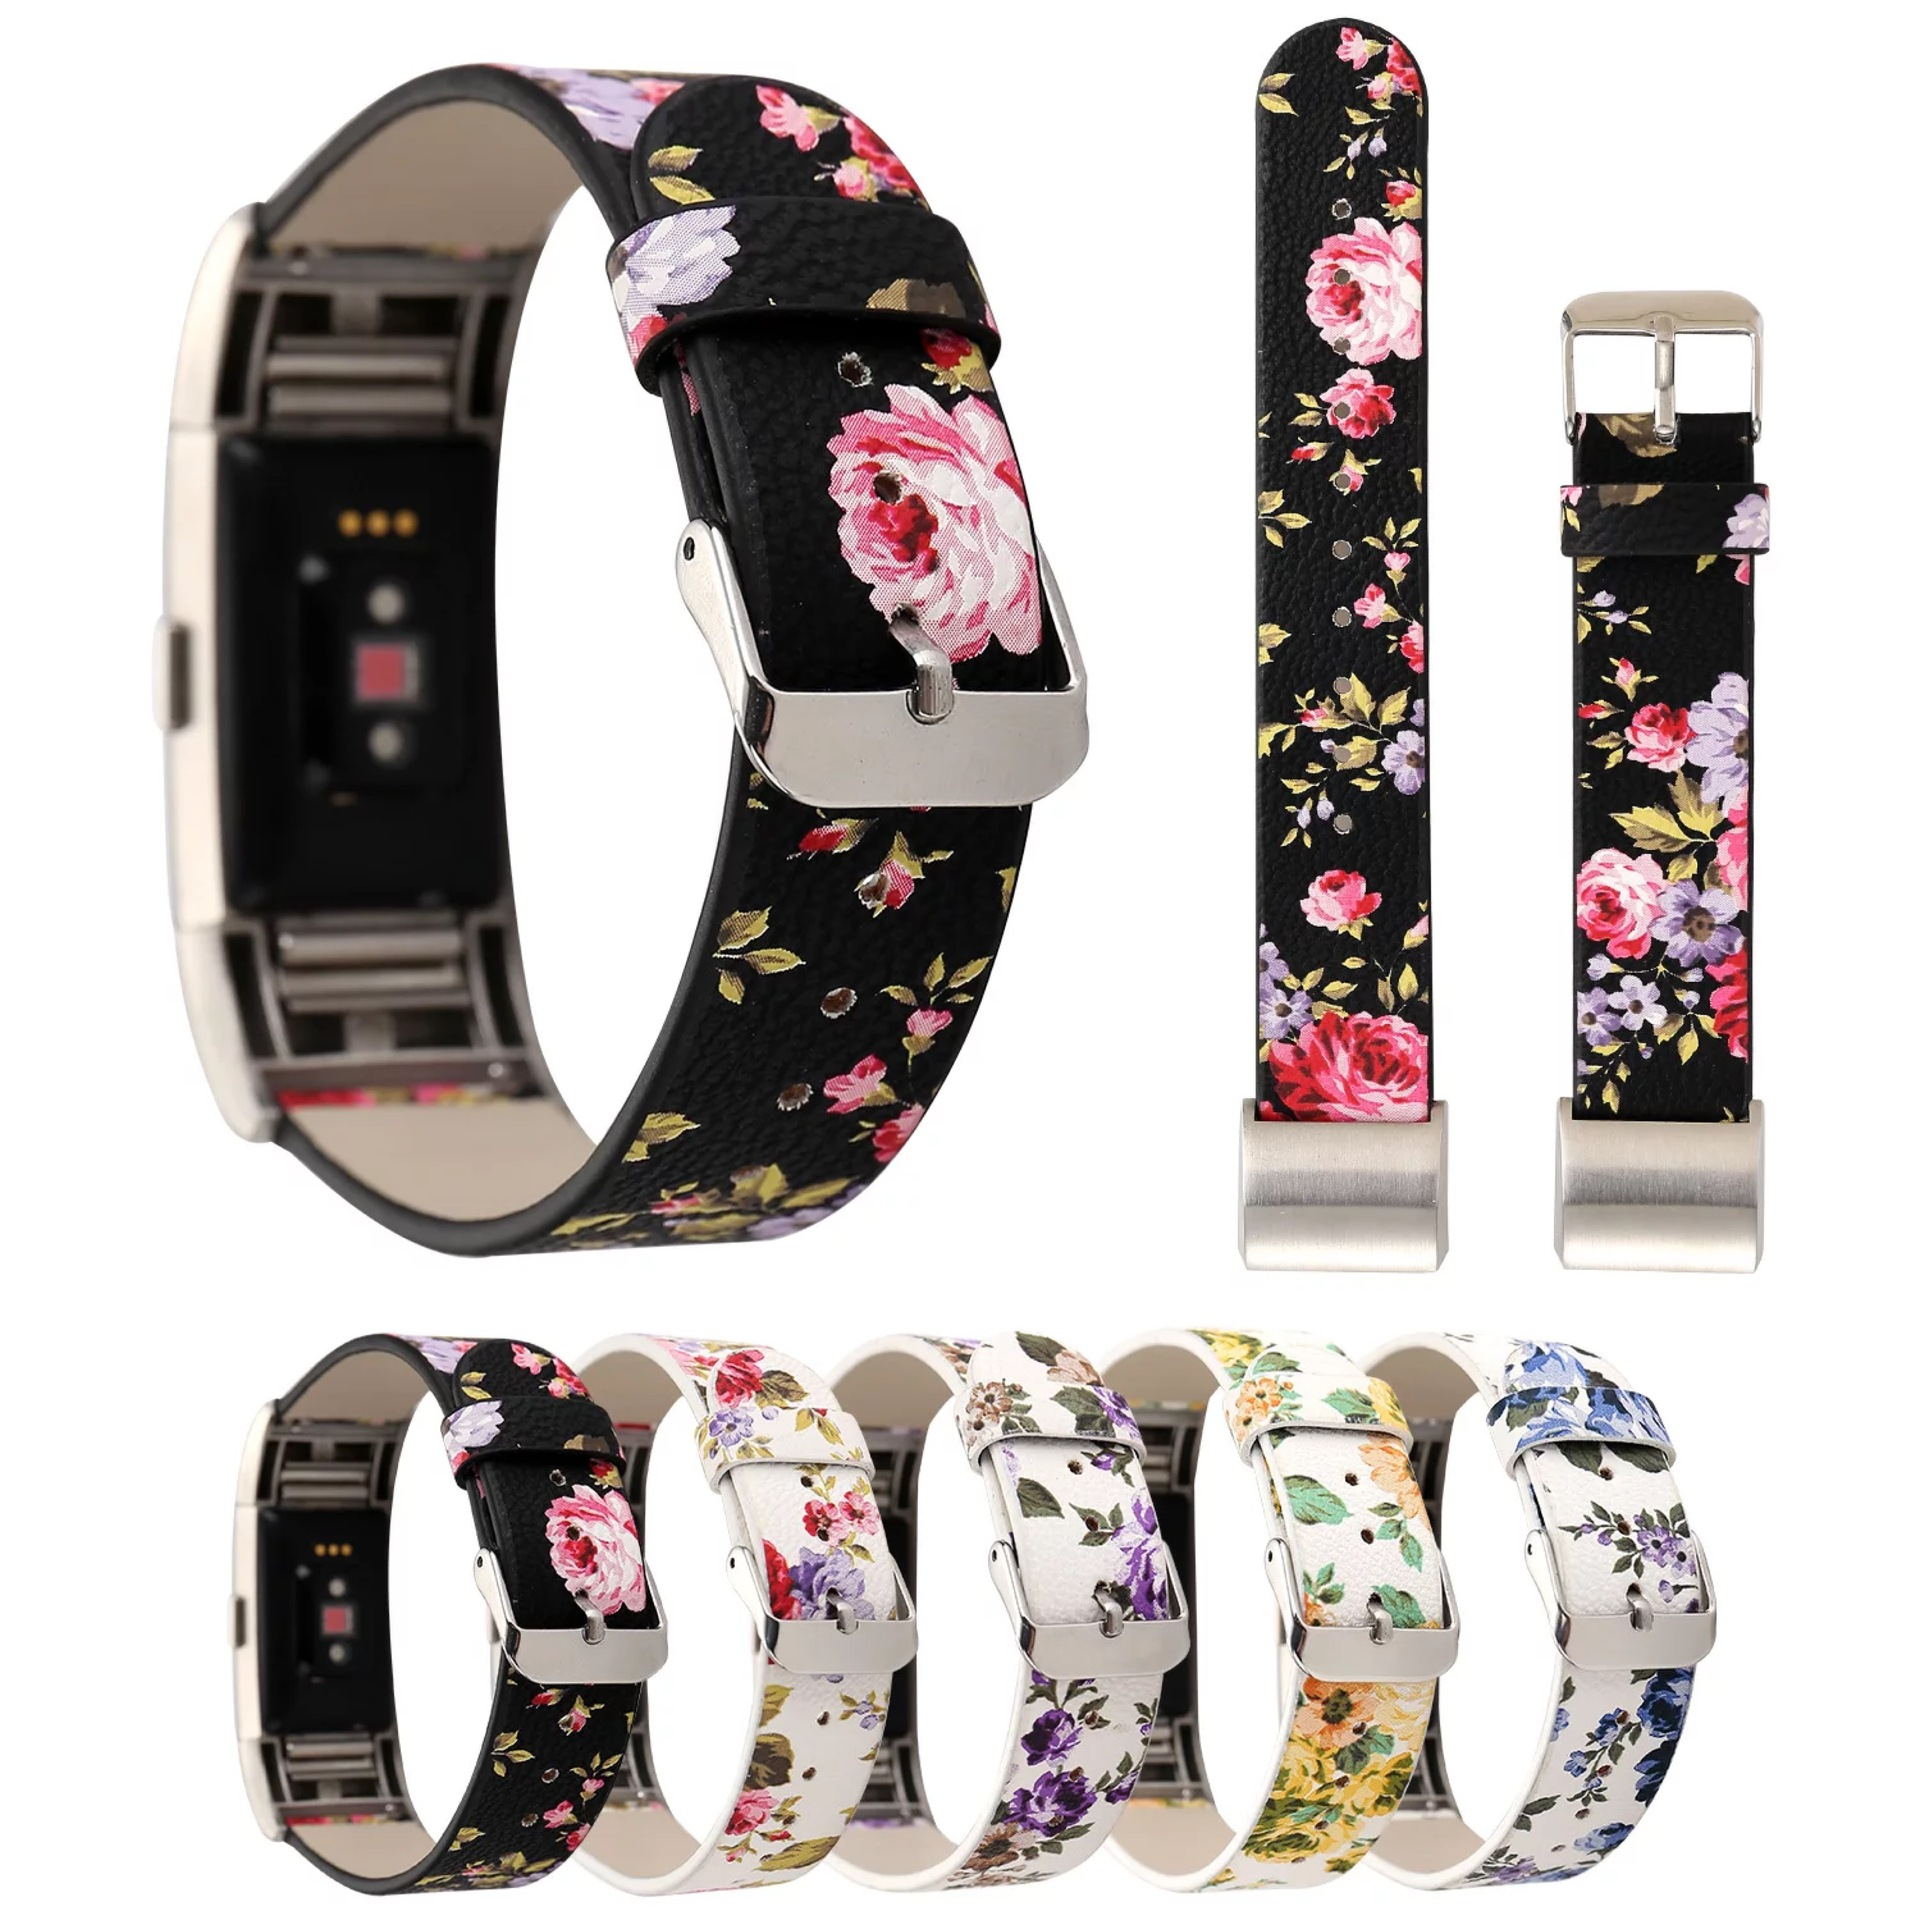 New Cross-border for Fitbit Charge2 Floral Leather Strap Charge 2 Printed